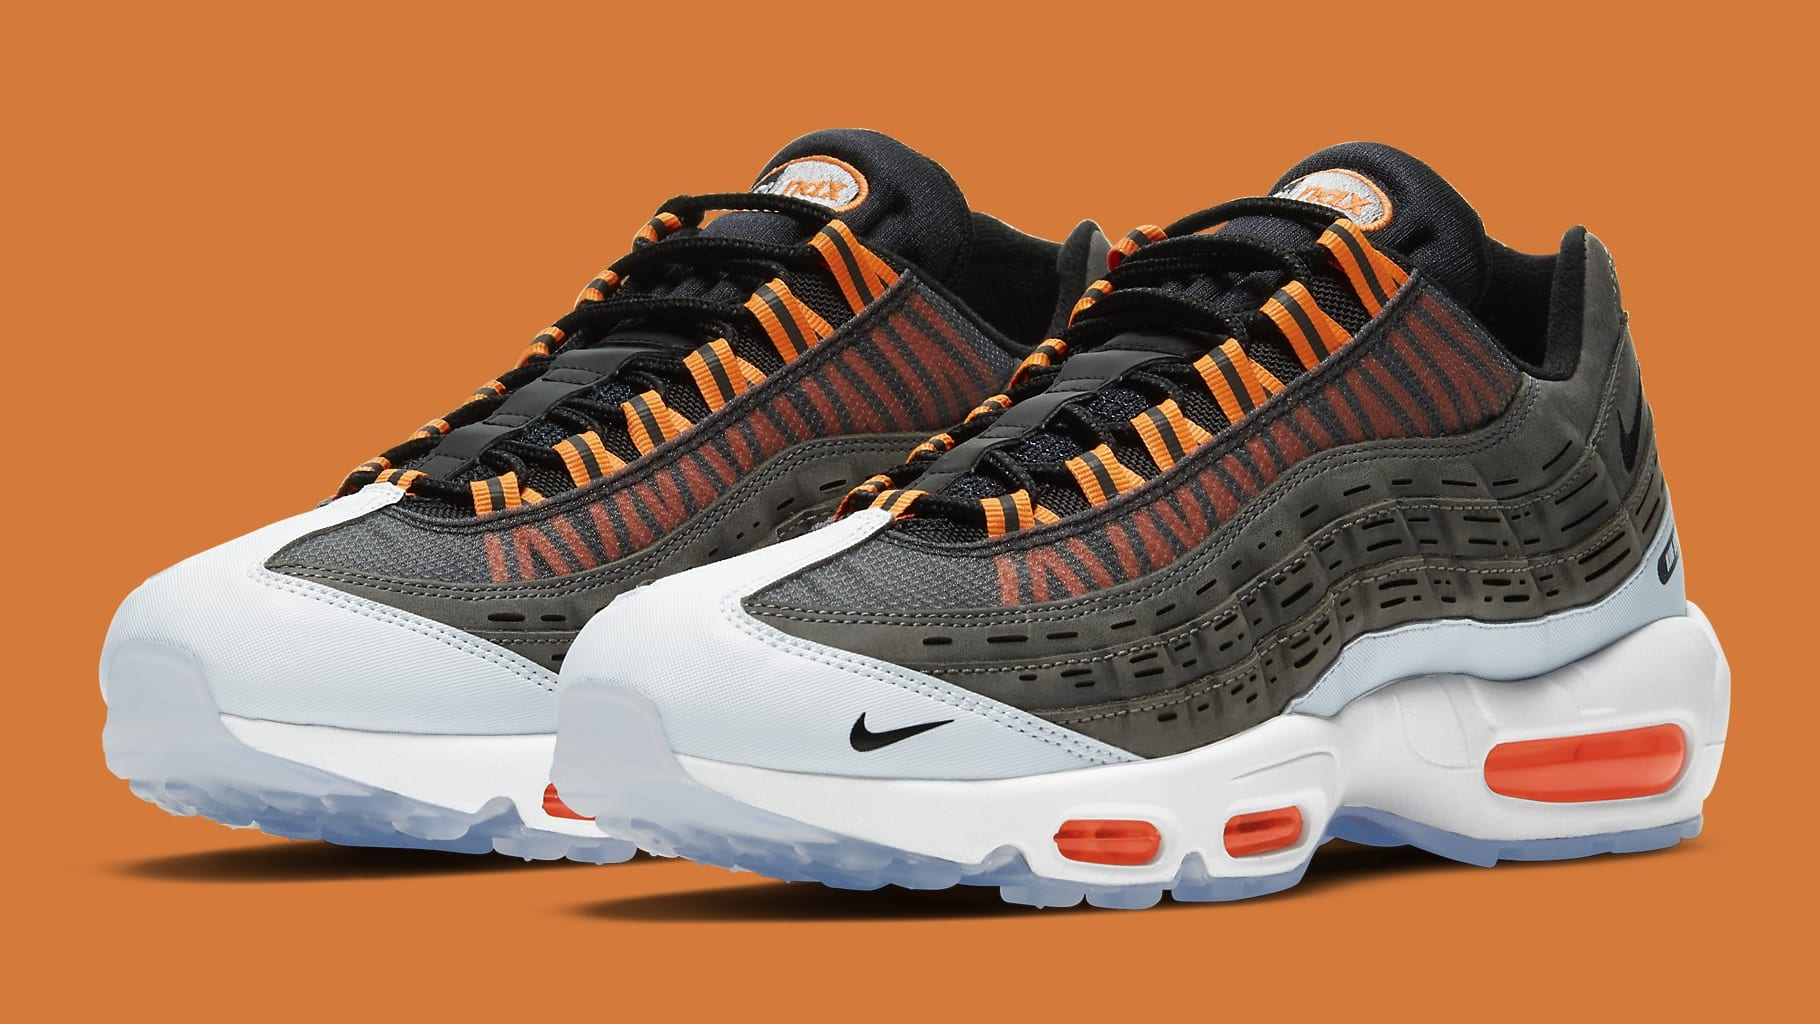 Kim Jones x Nike Air Max 95 Orange Release Date DD1871-001 Pair